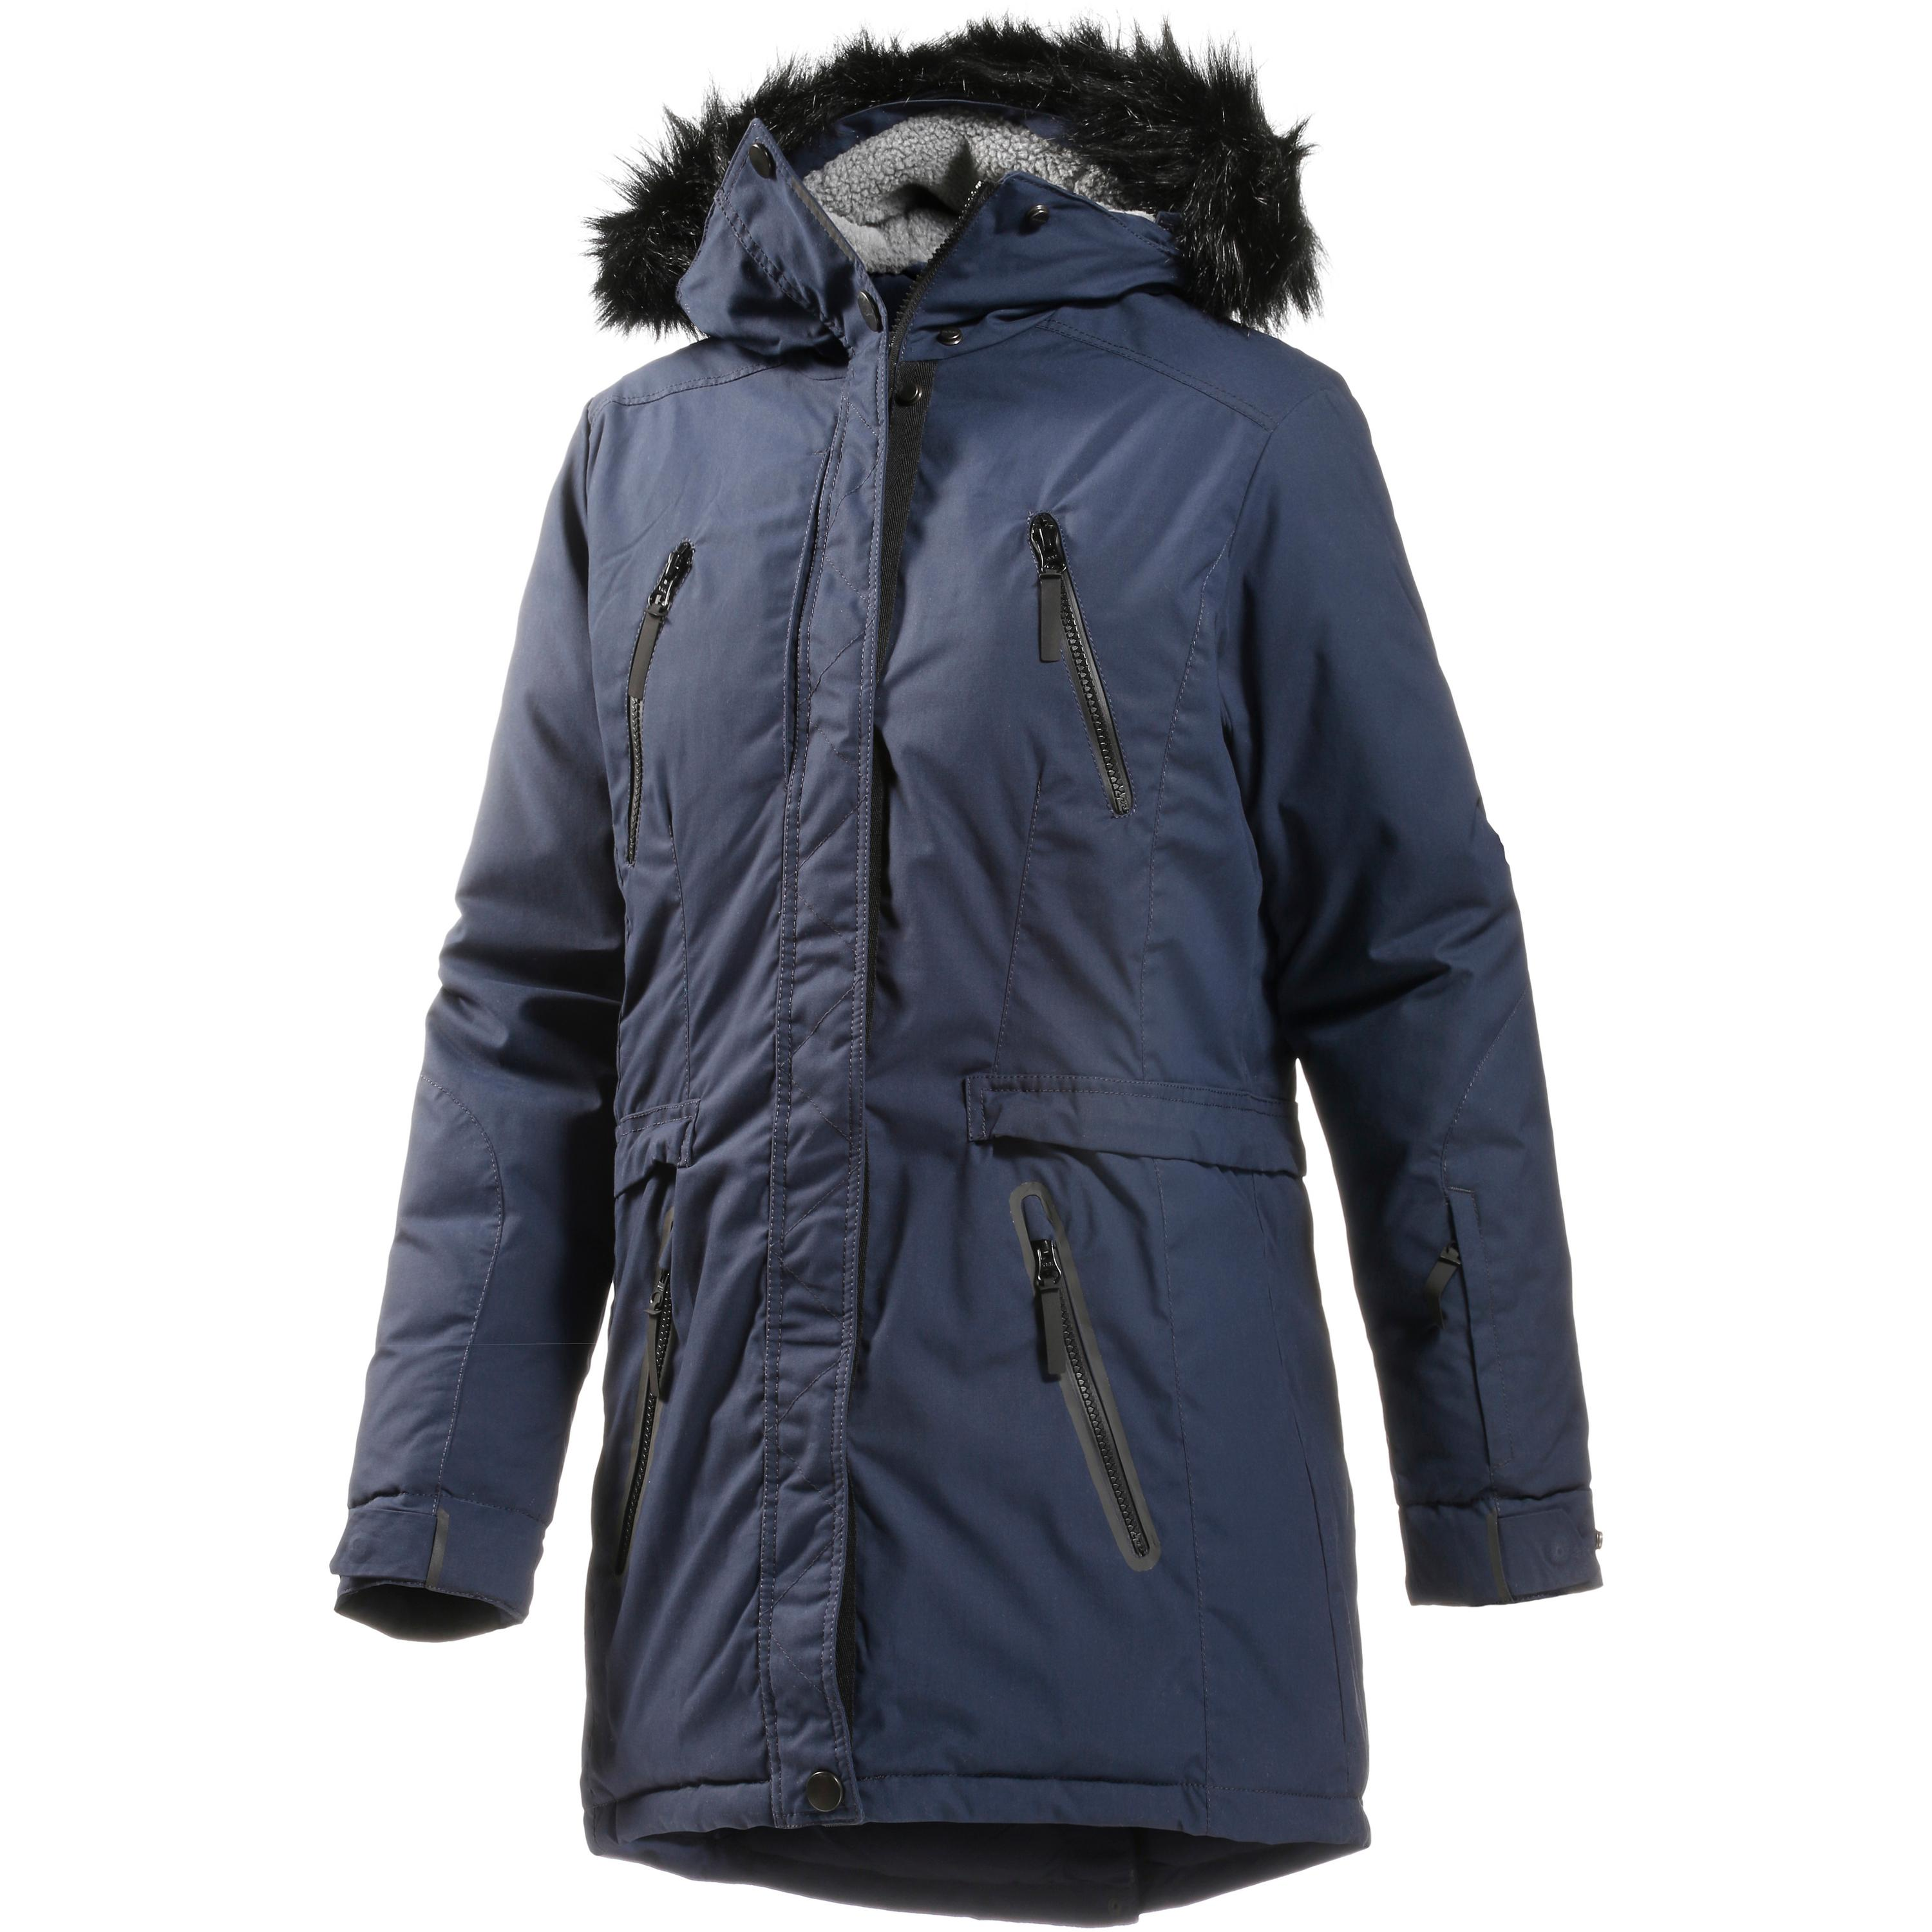 damen parka jack wolfskin preisvergleiche. Black Bedroom Furniture Sets. Home Design Ideas